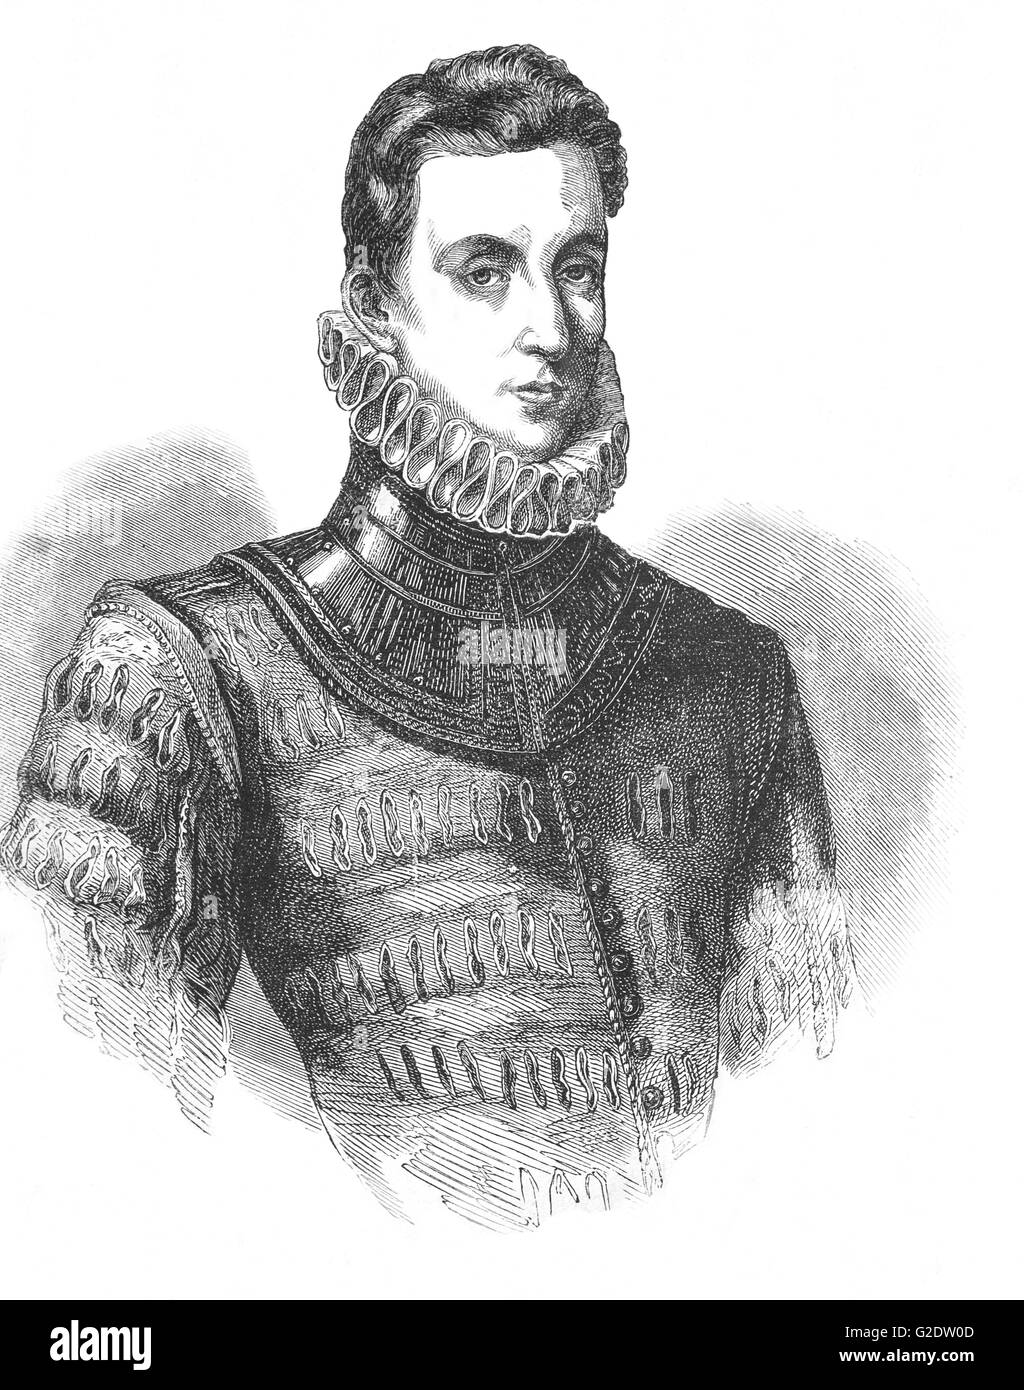 Sir Philip Sidney (1554 – 1586) was an English poet, courtier, scholar, and soldier, who is remembered as one of - Stock Image